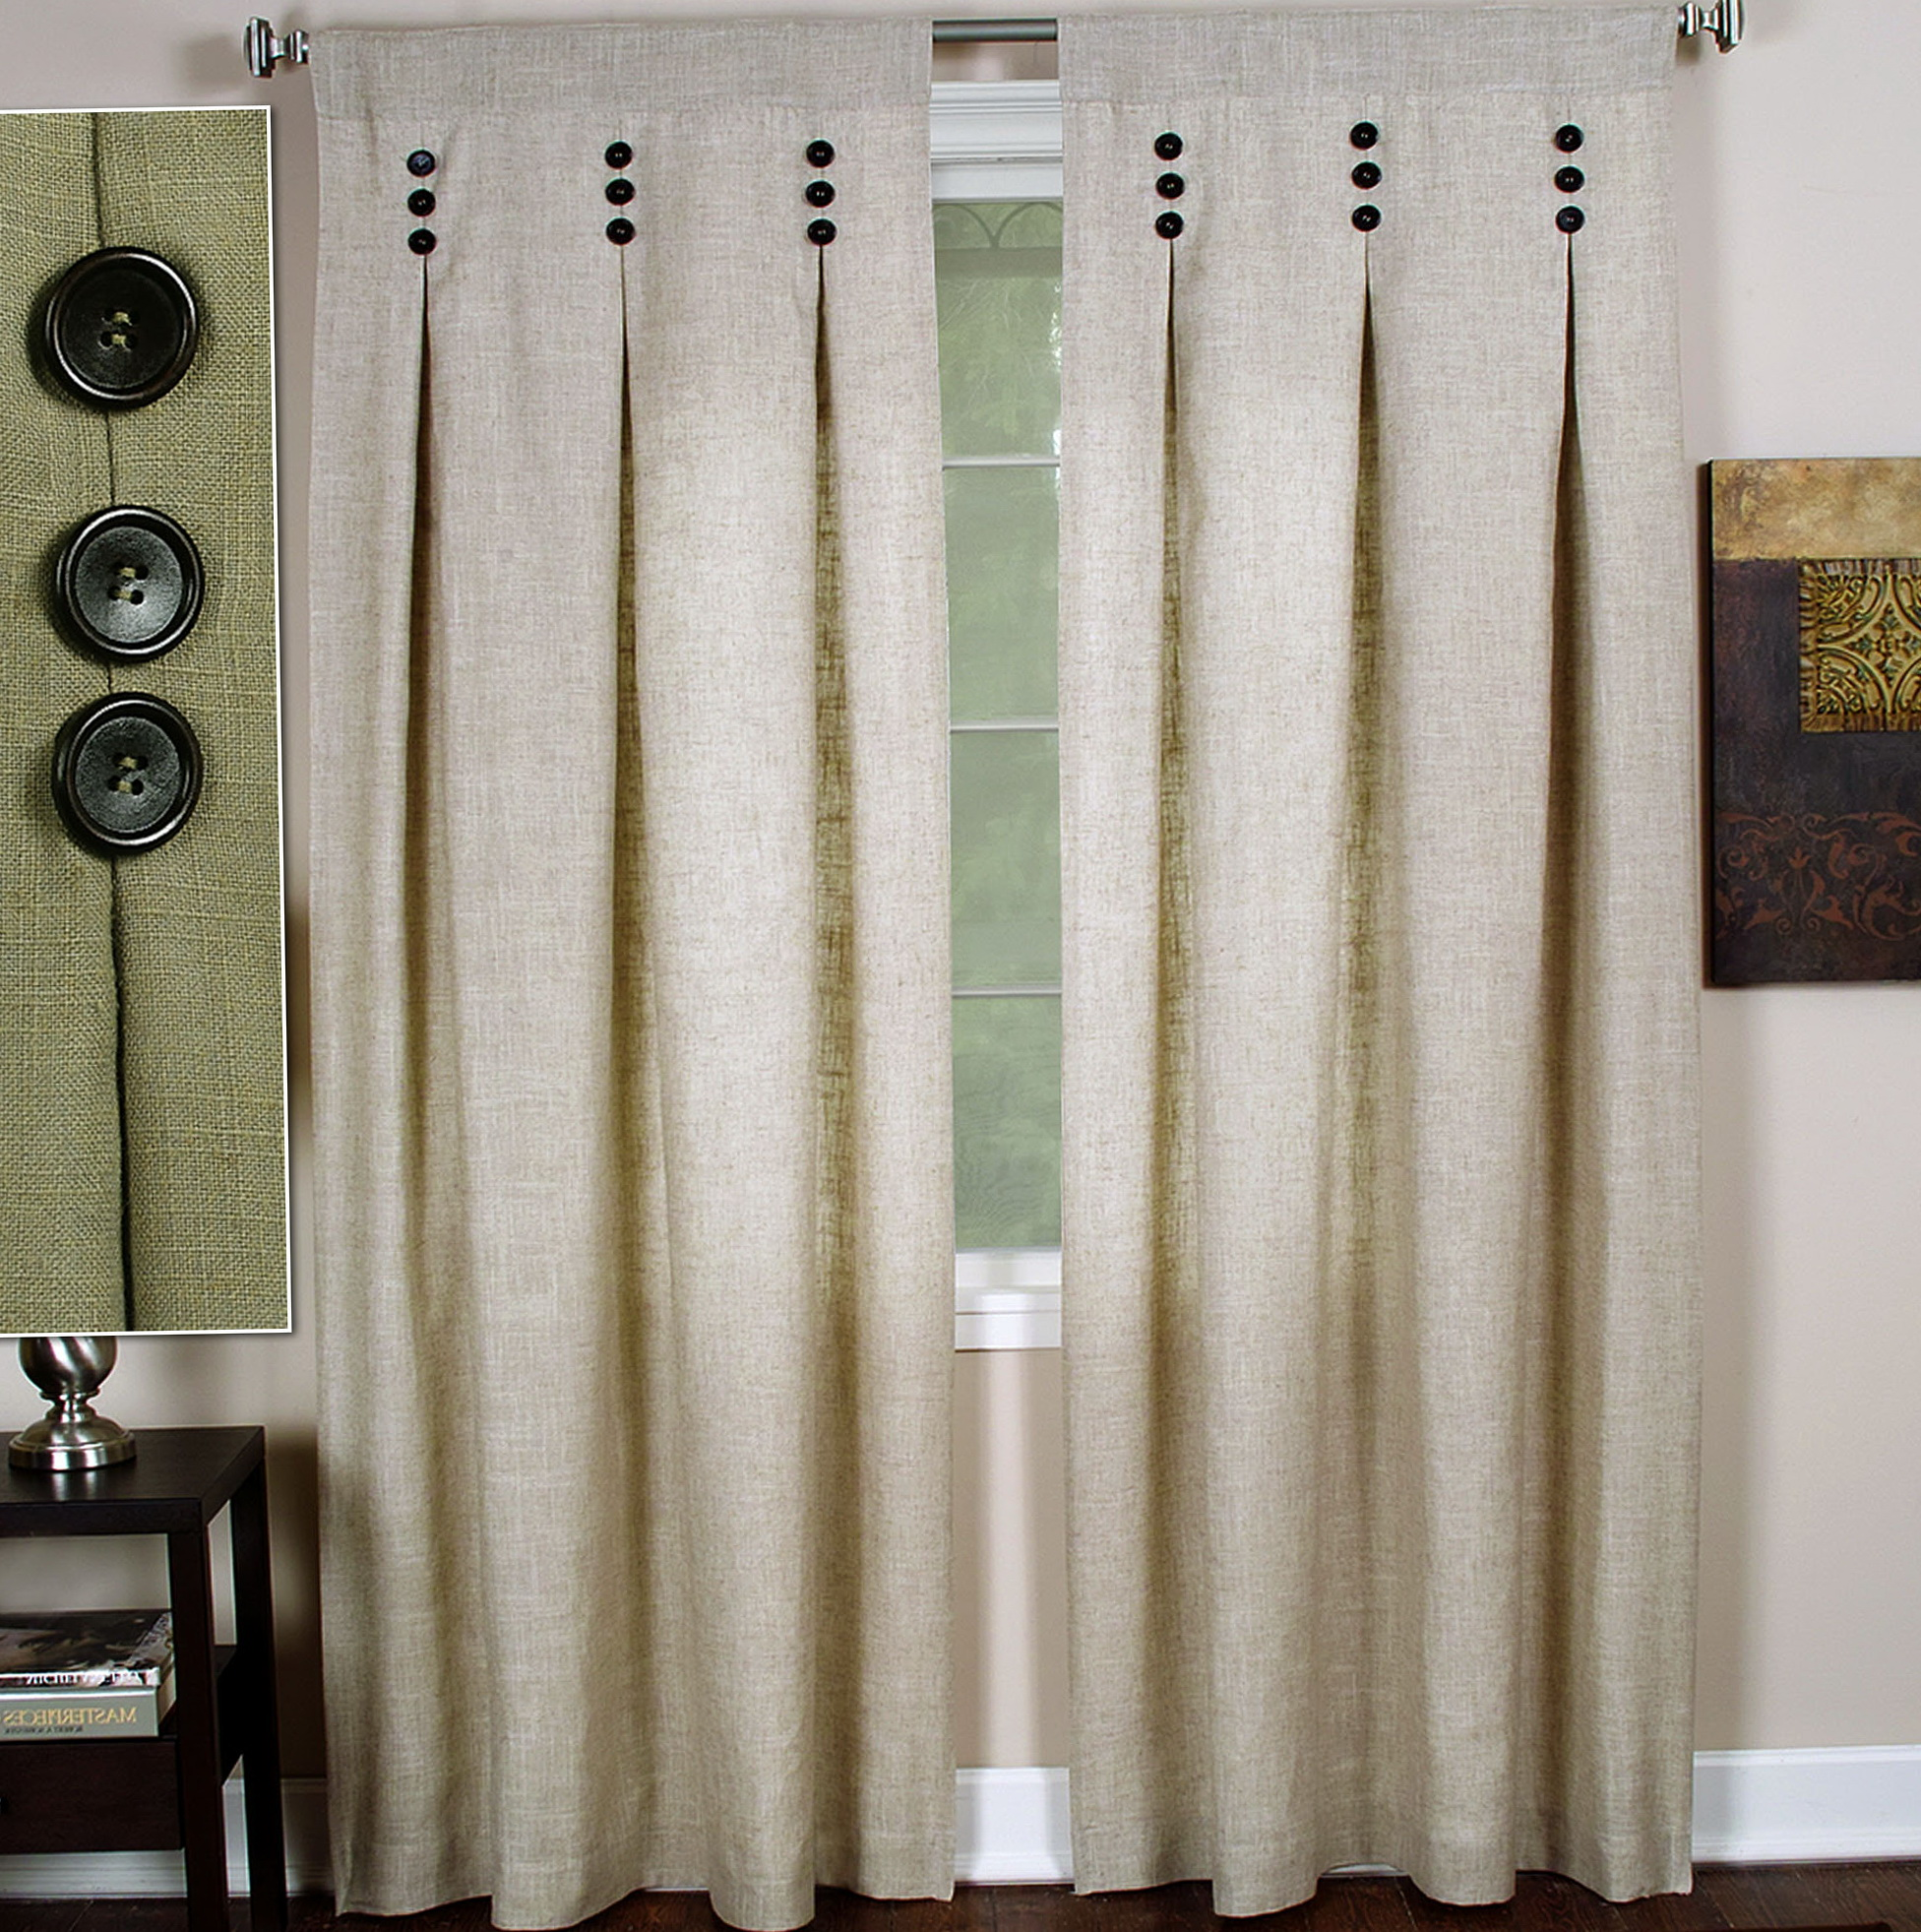 Curtains On Sale Bed Bath And Beyond Home Design Ideas